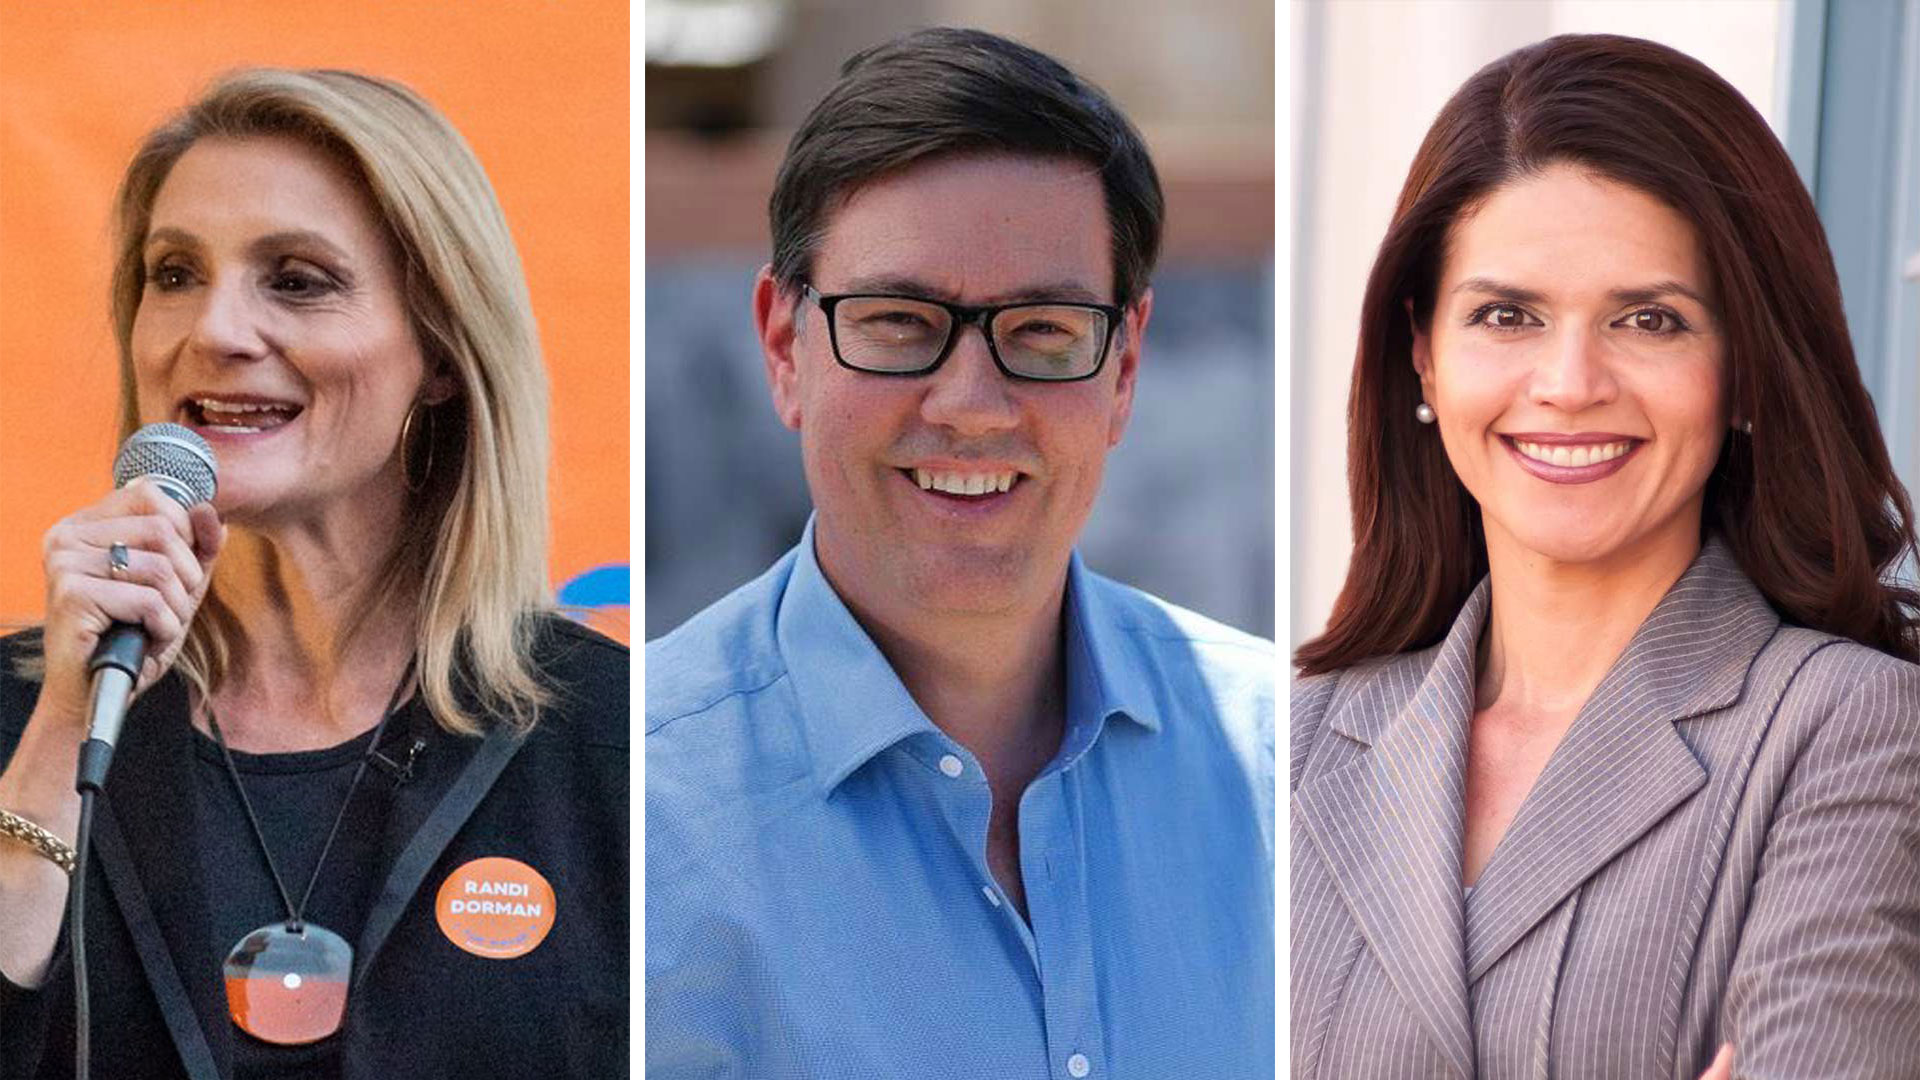 Democratic candidates for mayor of Tucson Randi Dorman, Steve Farley and Regina Romero, from the candidates' Facebook pages.